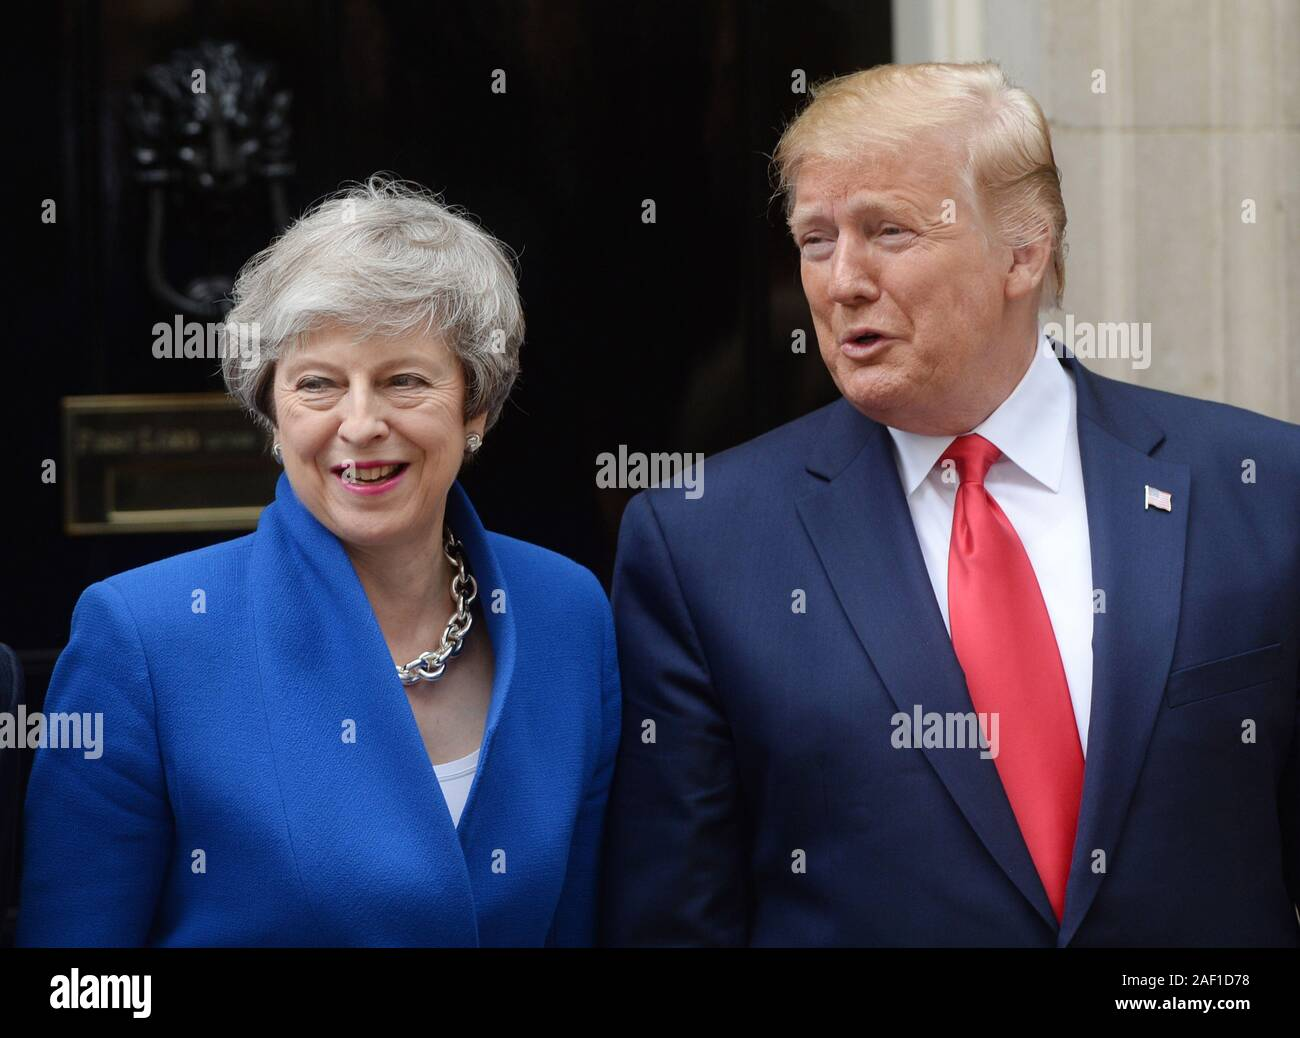 London, UK. 12th Dec, 2019. United States President Donald Trump meets with British Prime Minister Theresa May at No. 10 Downing Street during Trump's State Visit to London on June 4, 2019. Photo by Rune Hellestad/UPI Credit: UPI/Alamy Live News Stock Photo